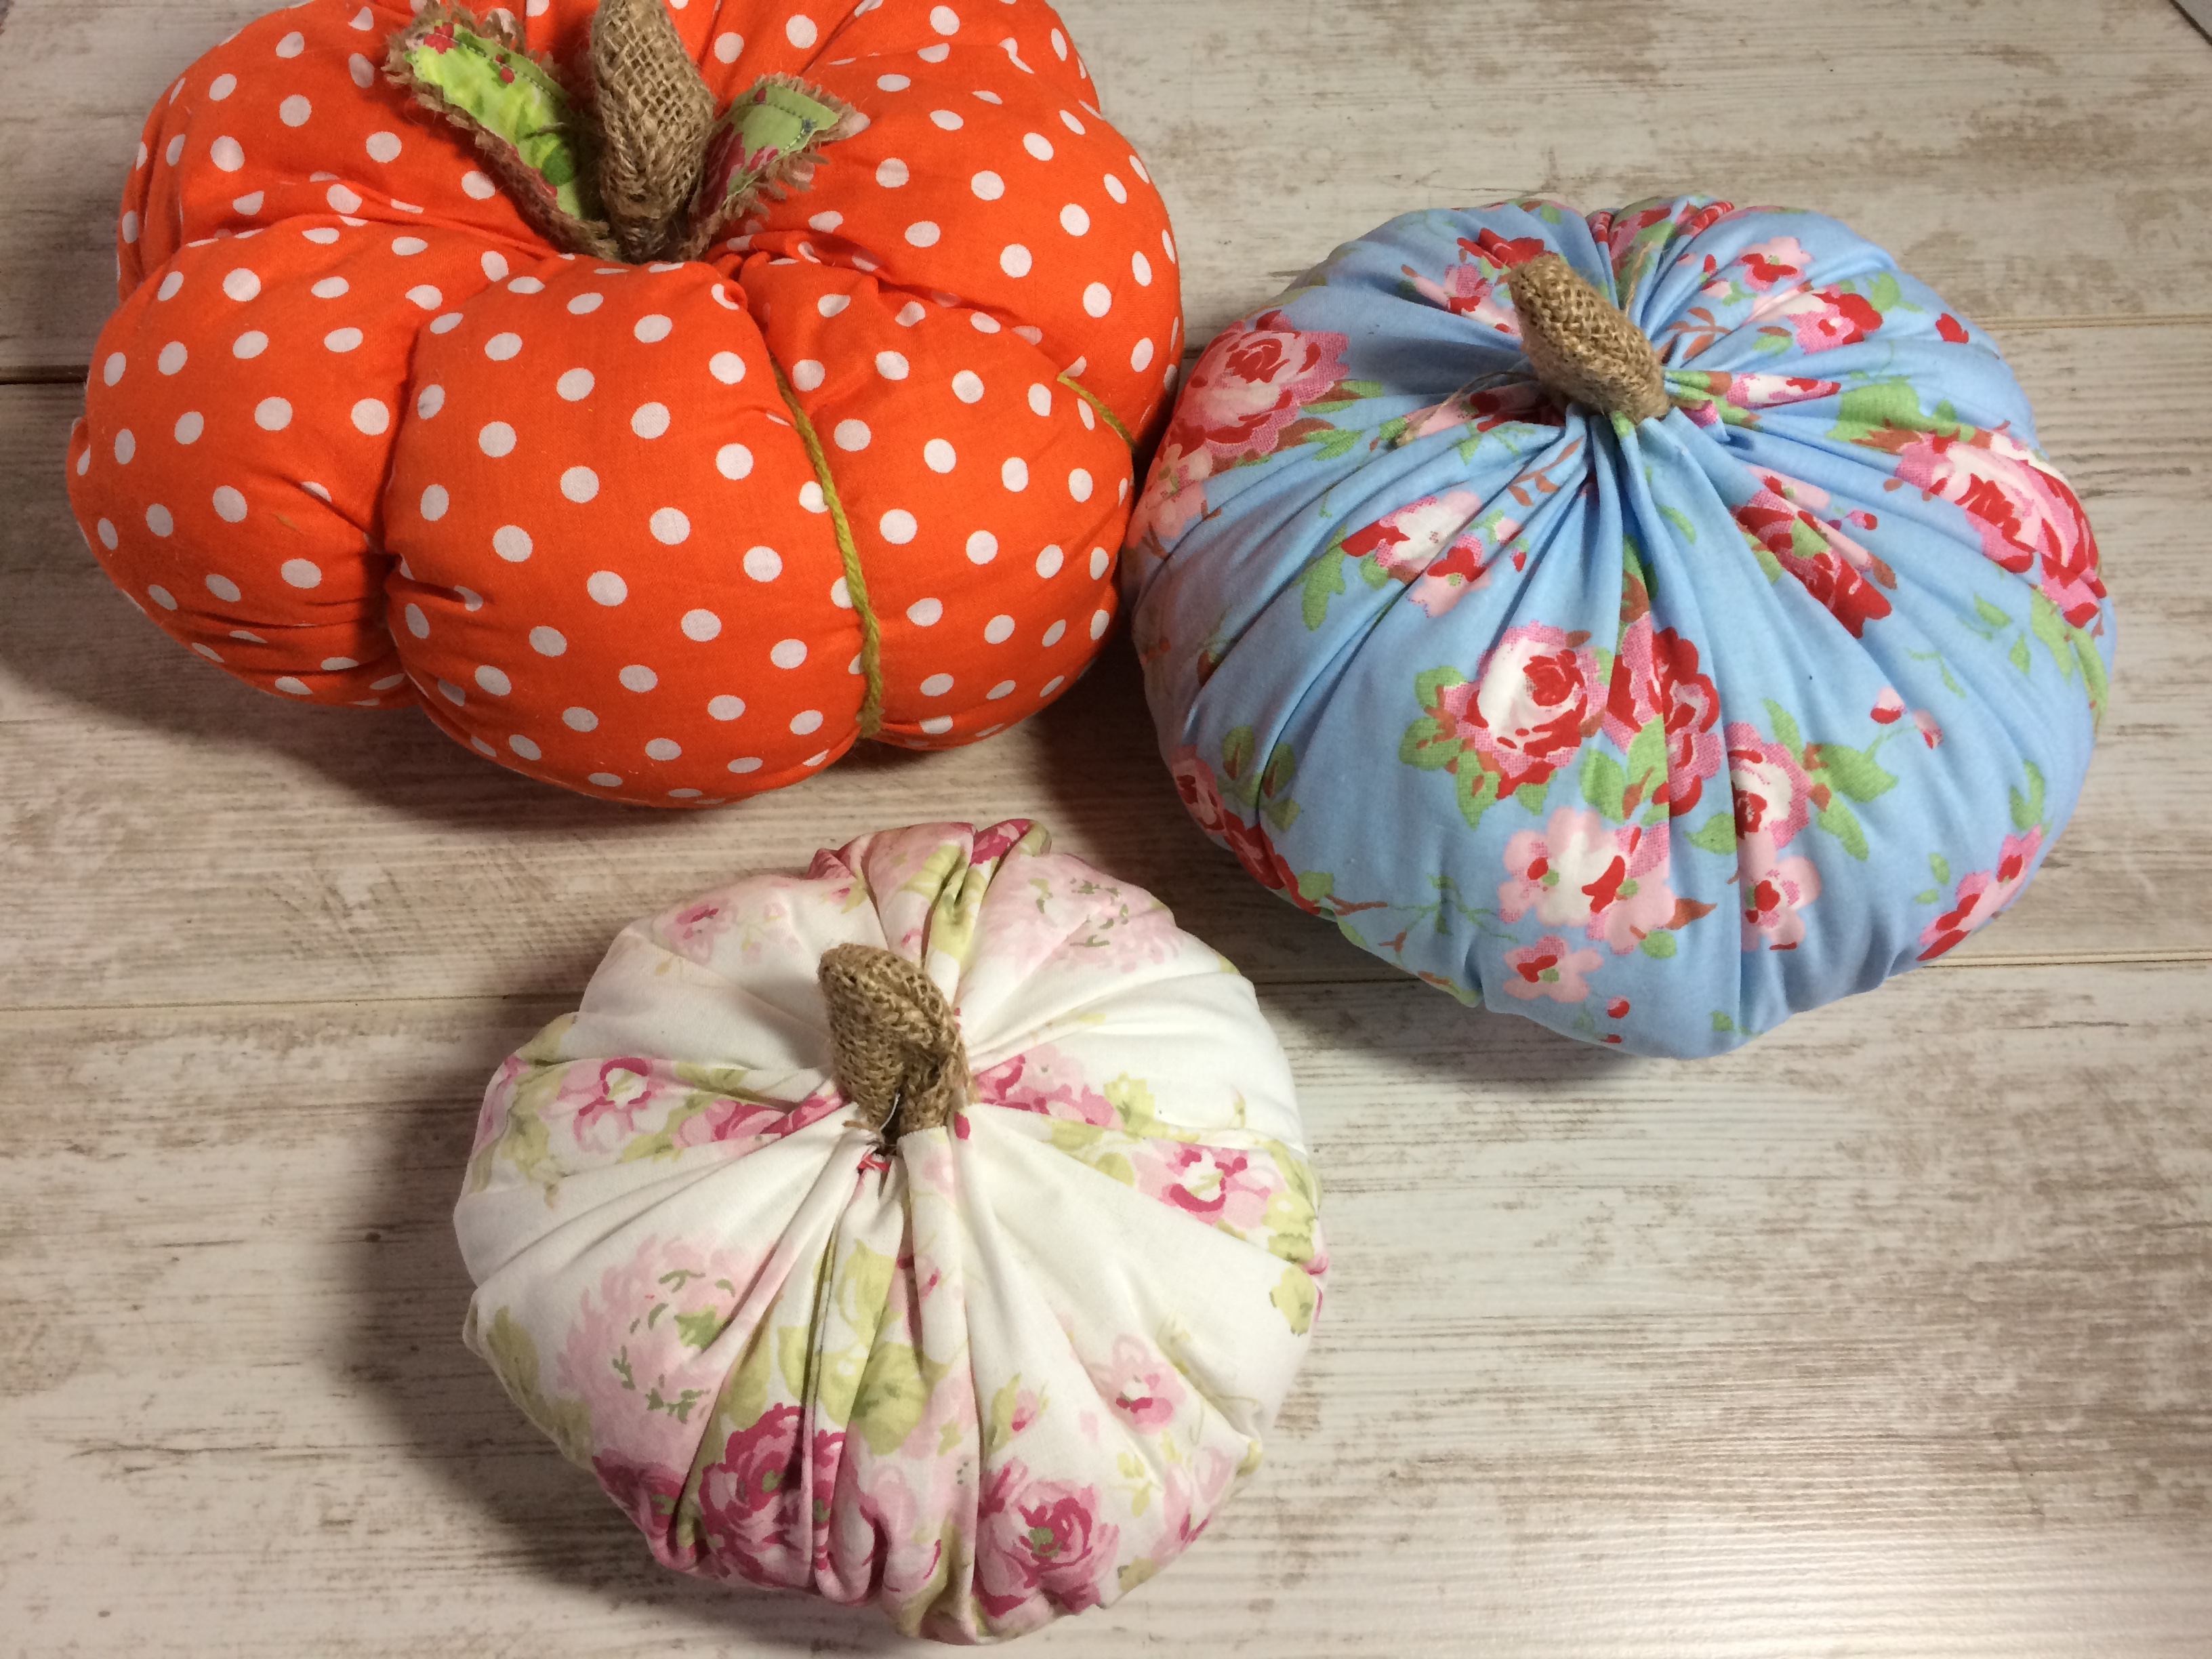 DIY Fabric Pumpkin Tutorial